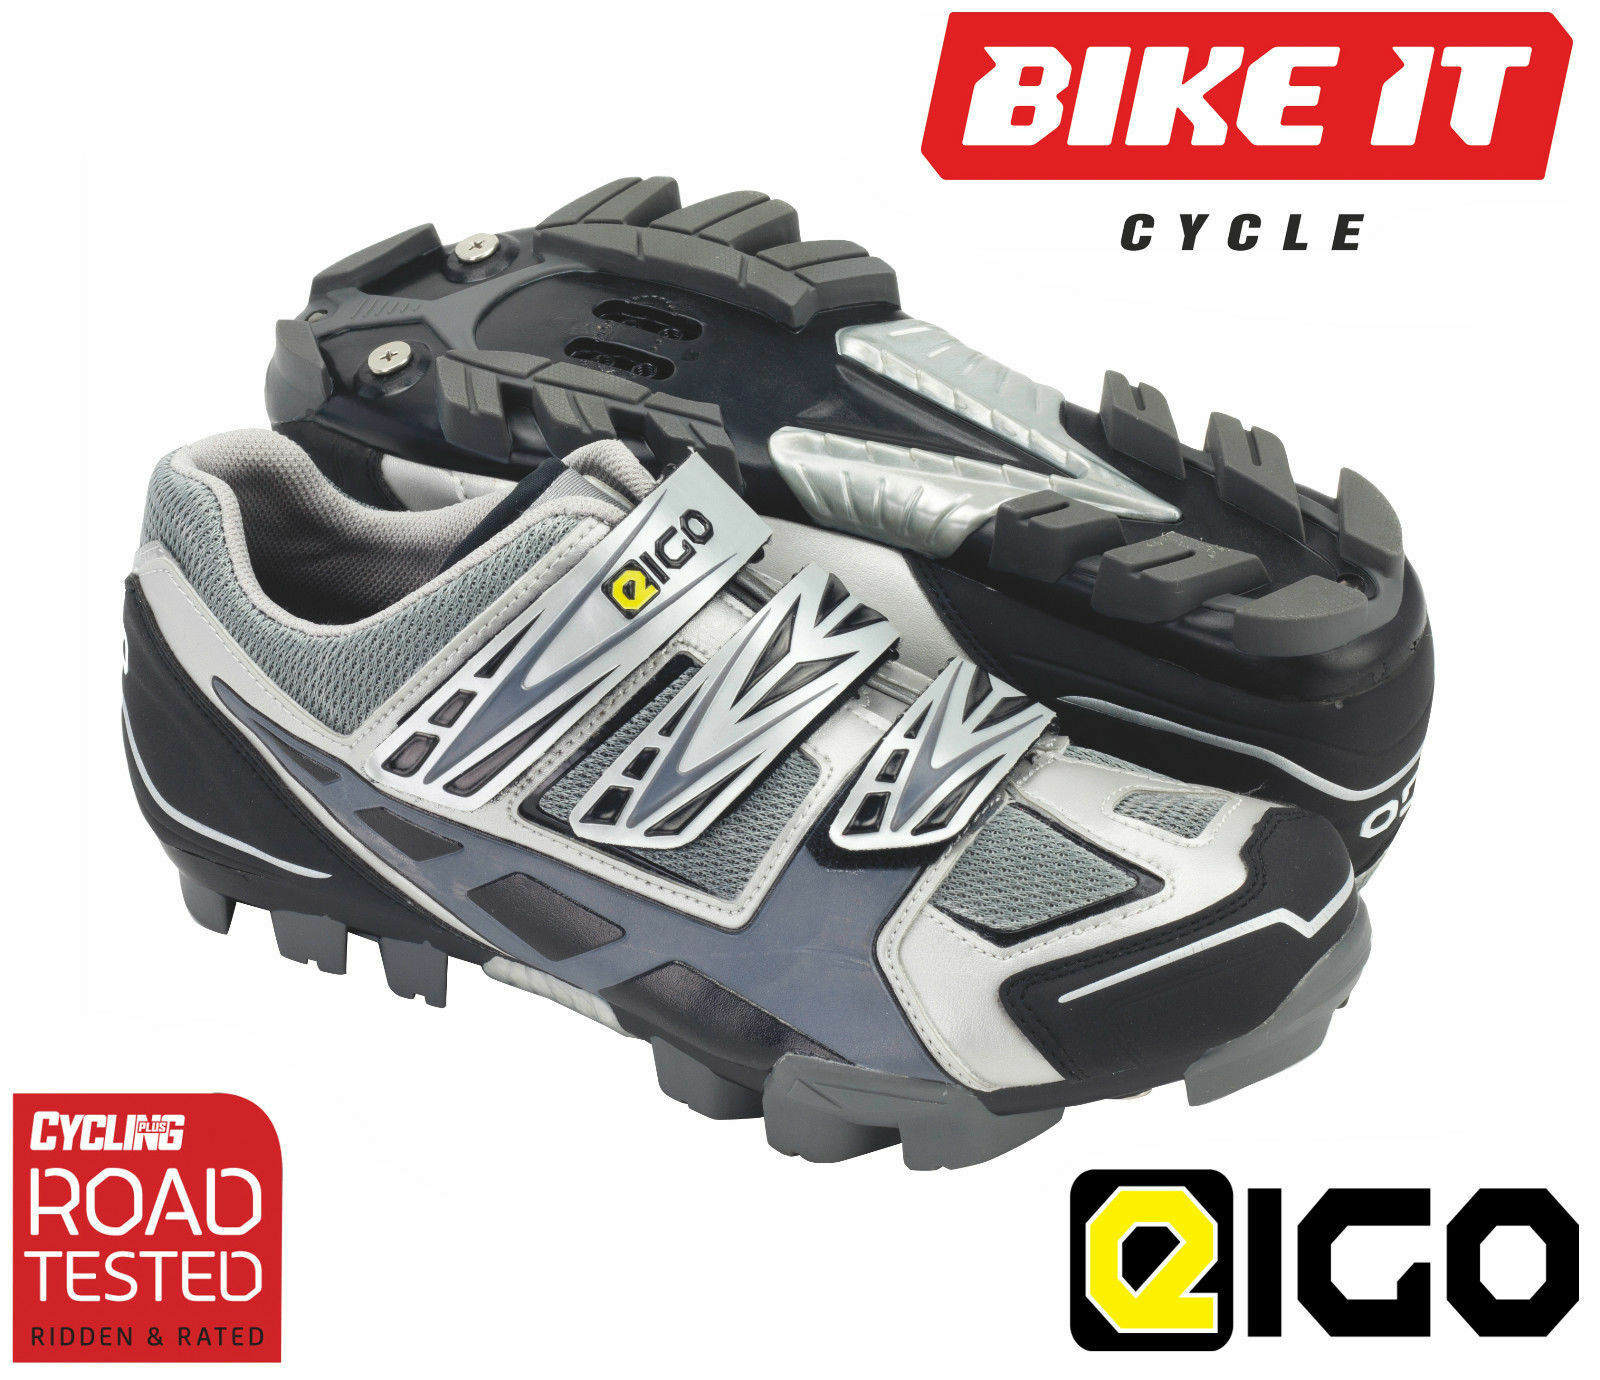 EIGO EPSILON DH SHOES MOUNTAIN BIKE MTB CROSS COUNTRY SHOES